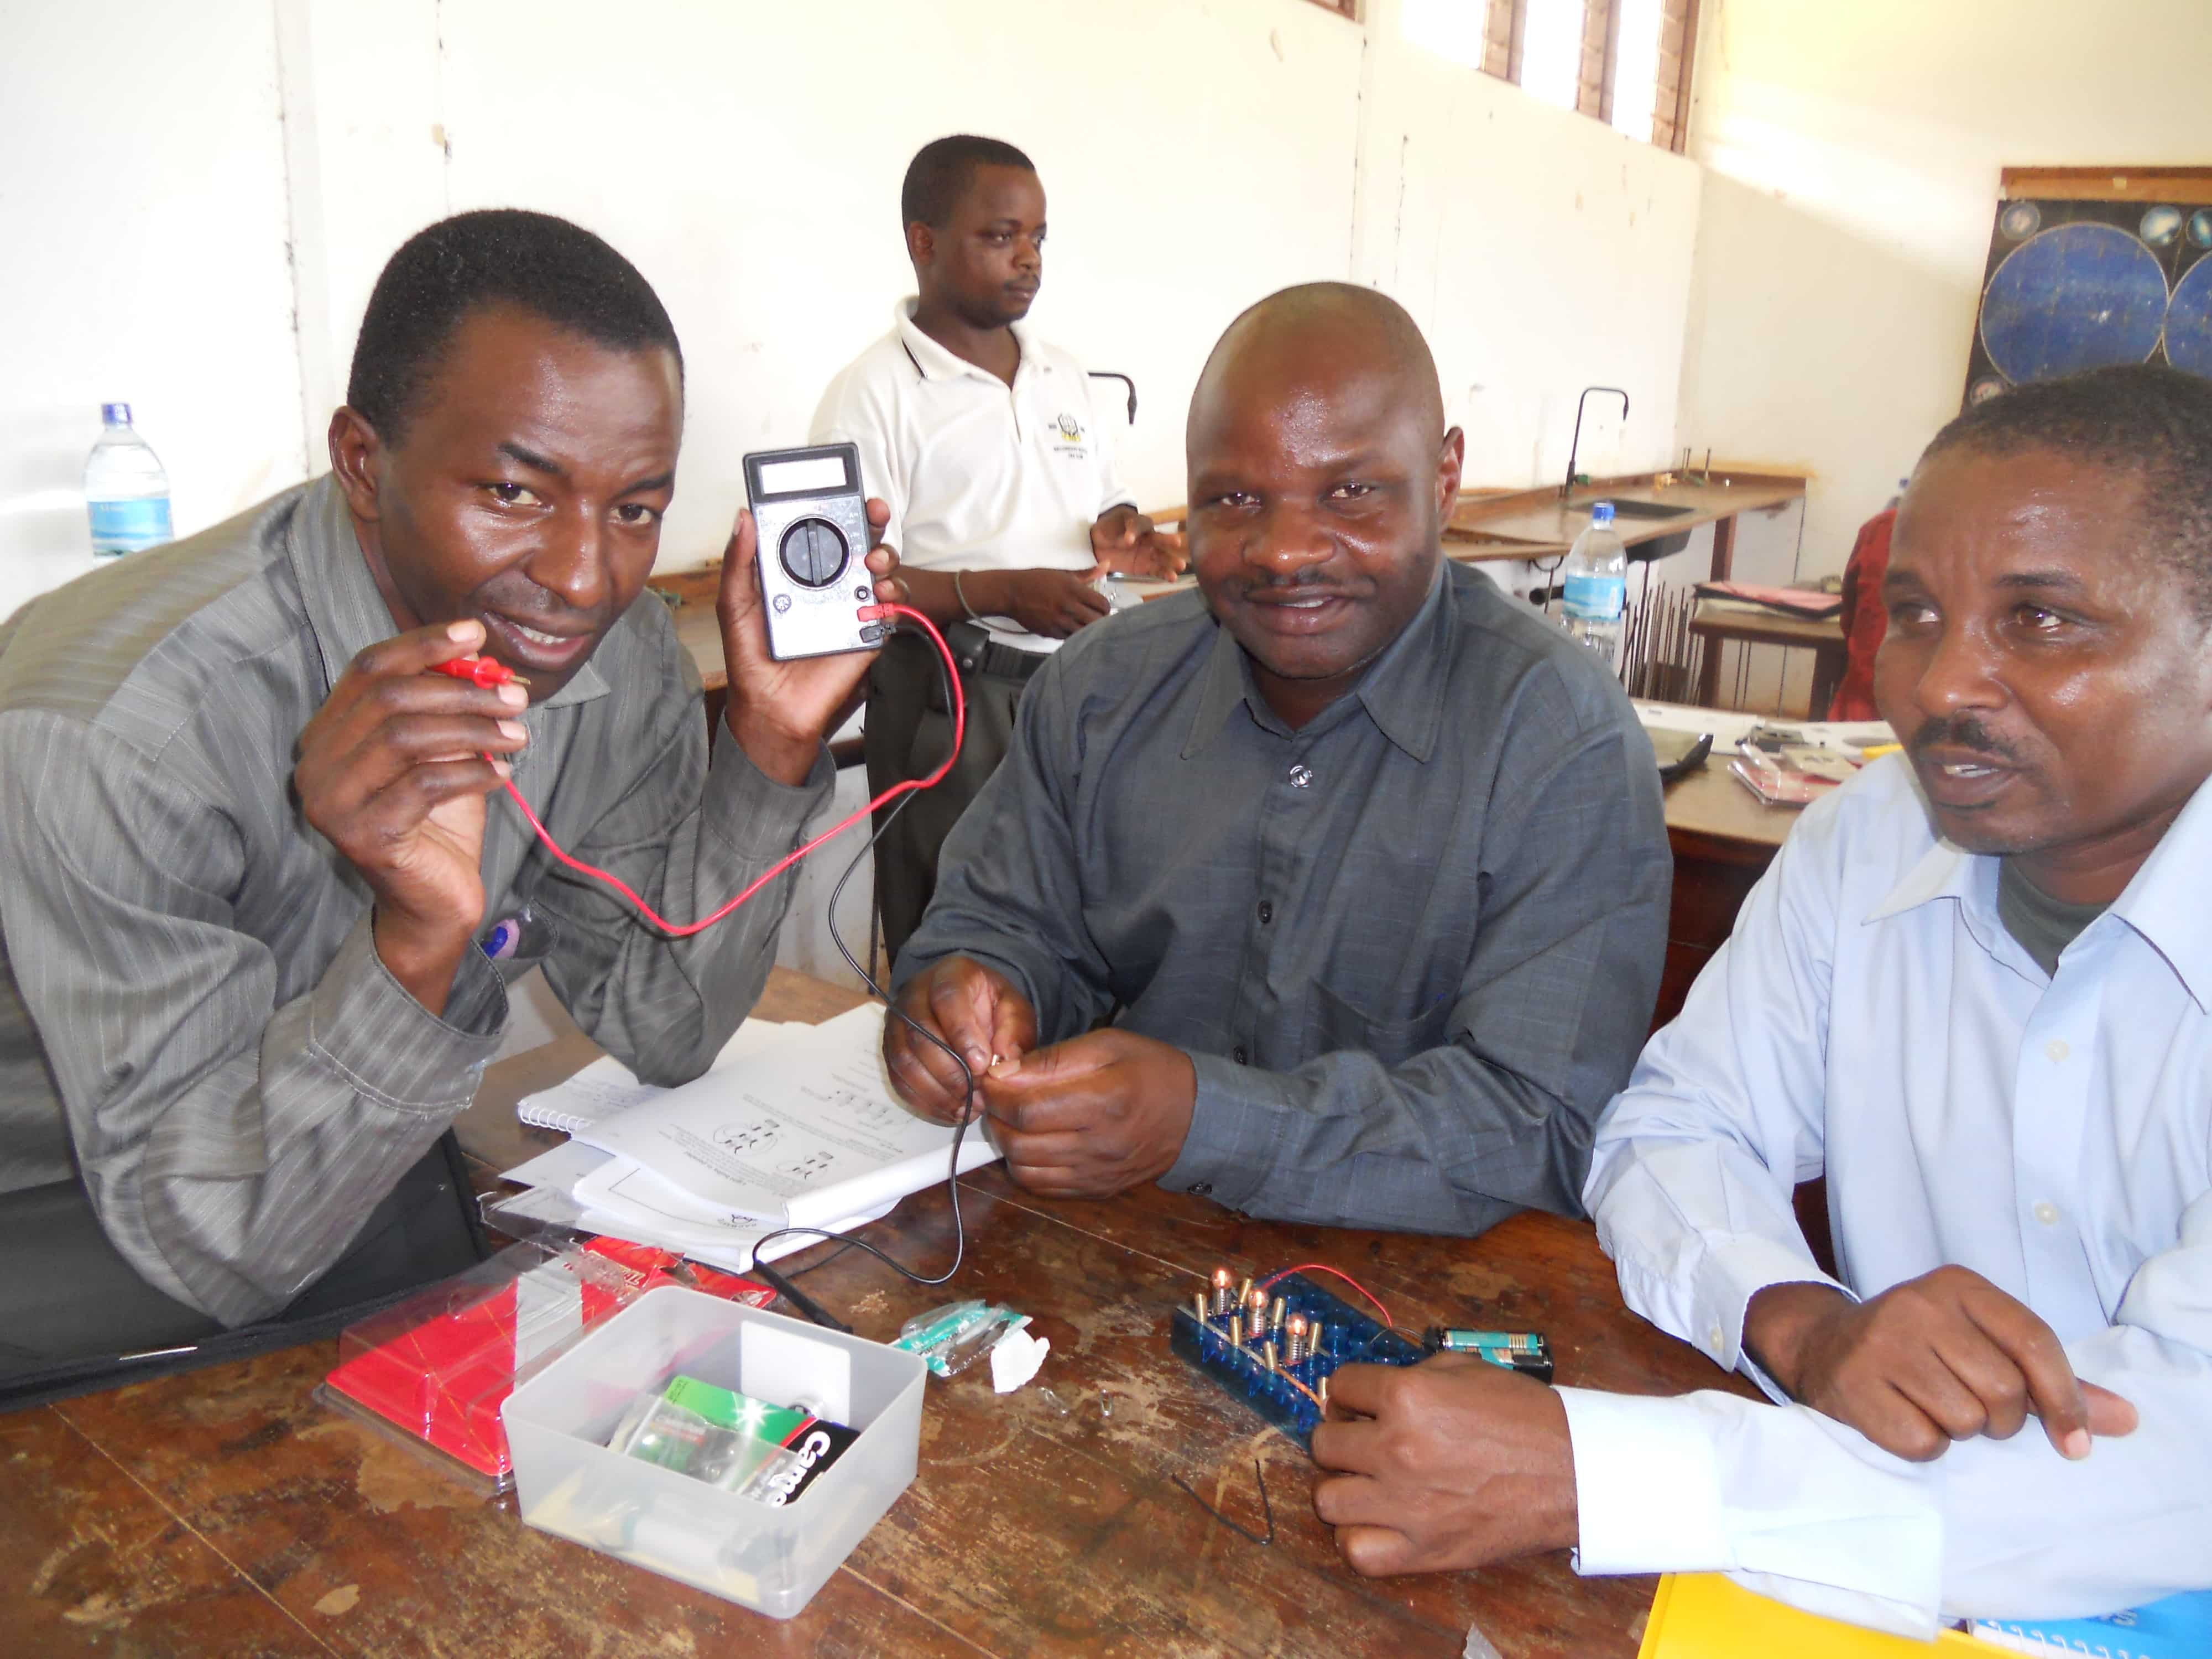 Teachers prepare themselves for classroom teaching with the microelectricity kit.